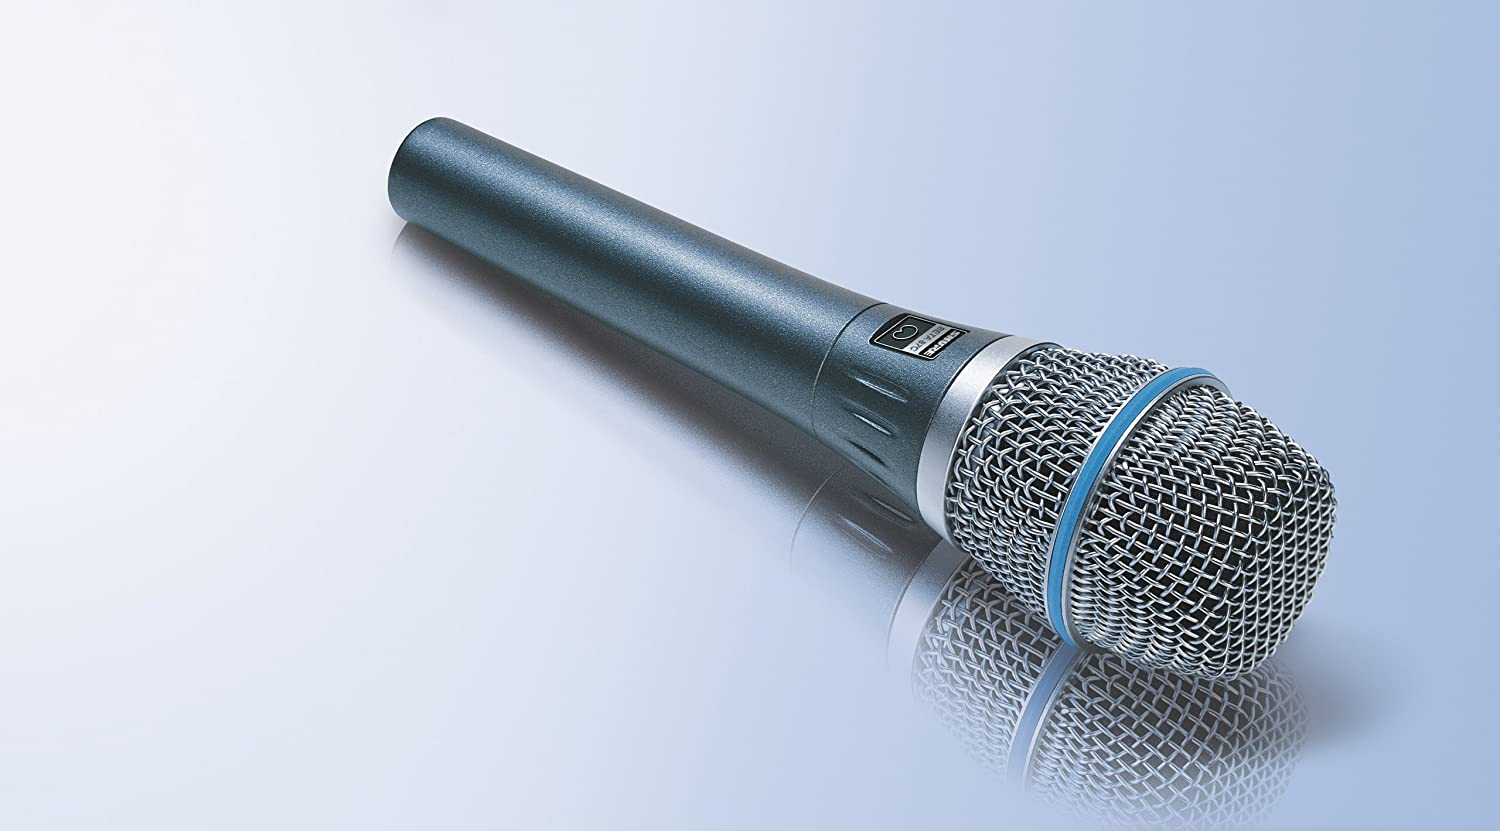 Shure BETA87C Cardioid Condenser Microphone for Handheld Vocal Applications Shure Incorporated